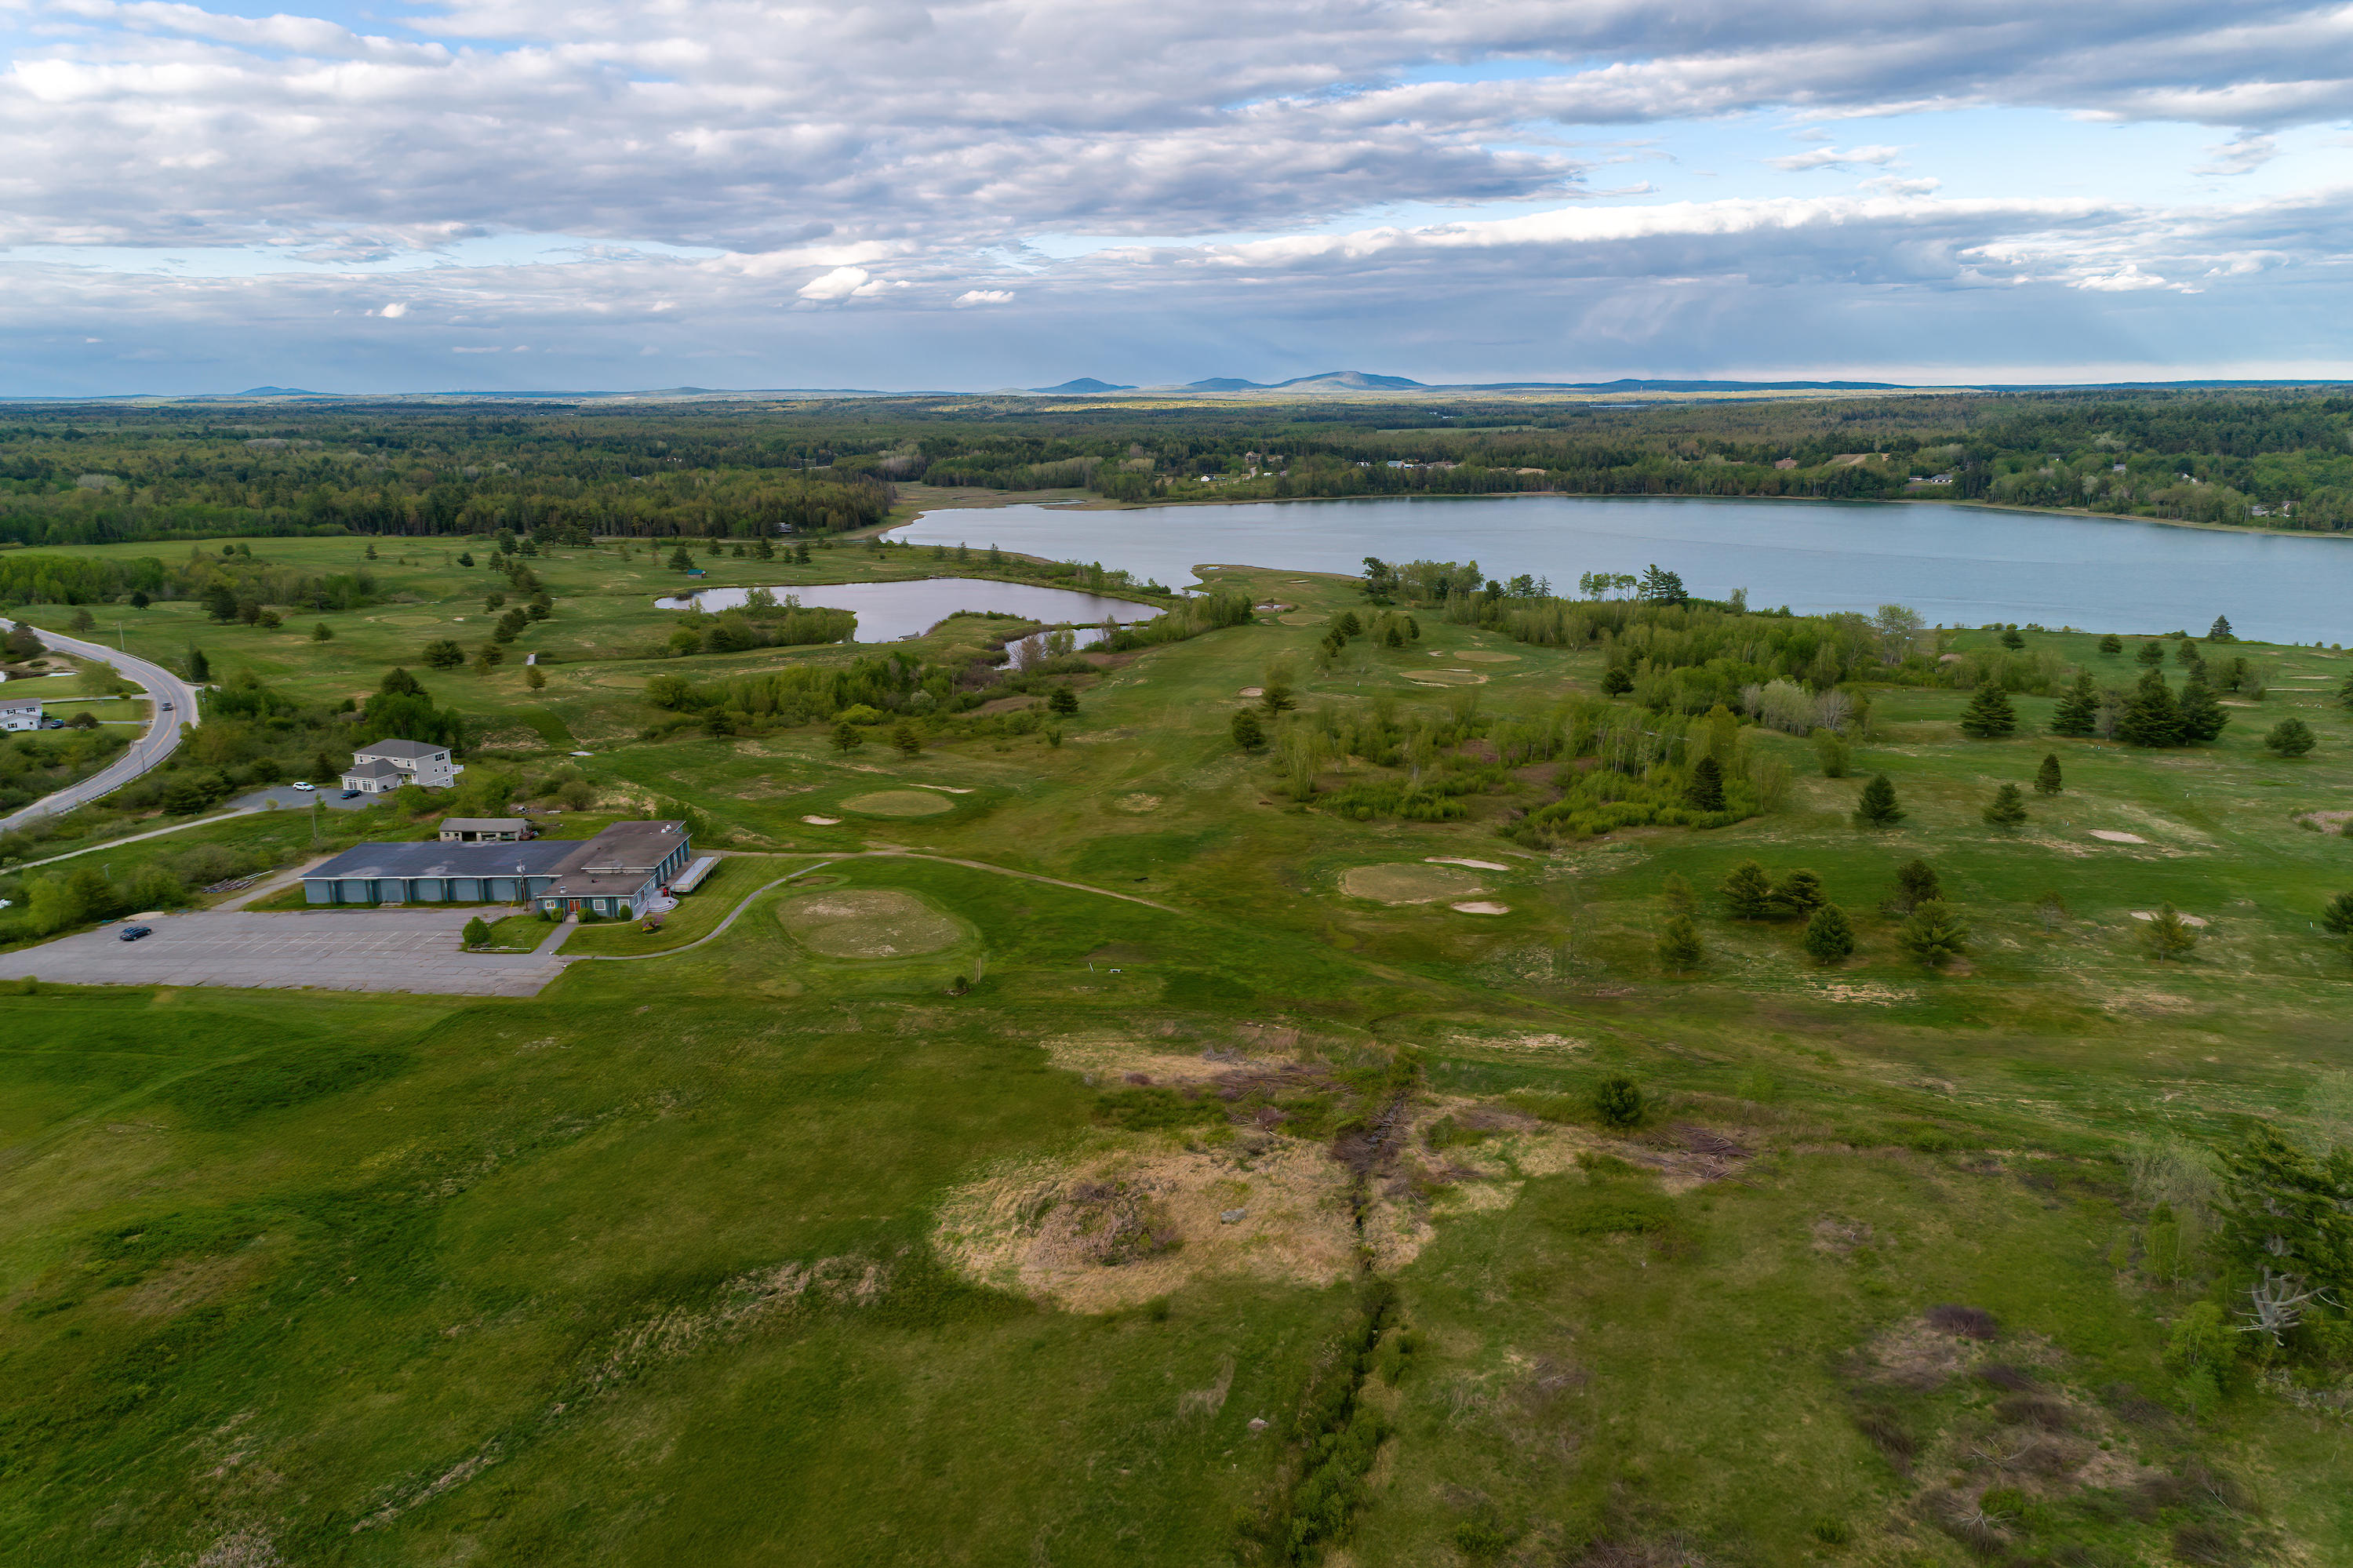 Land in Foreground Commercially Zoned